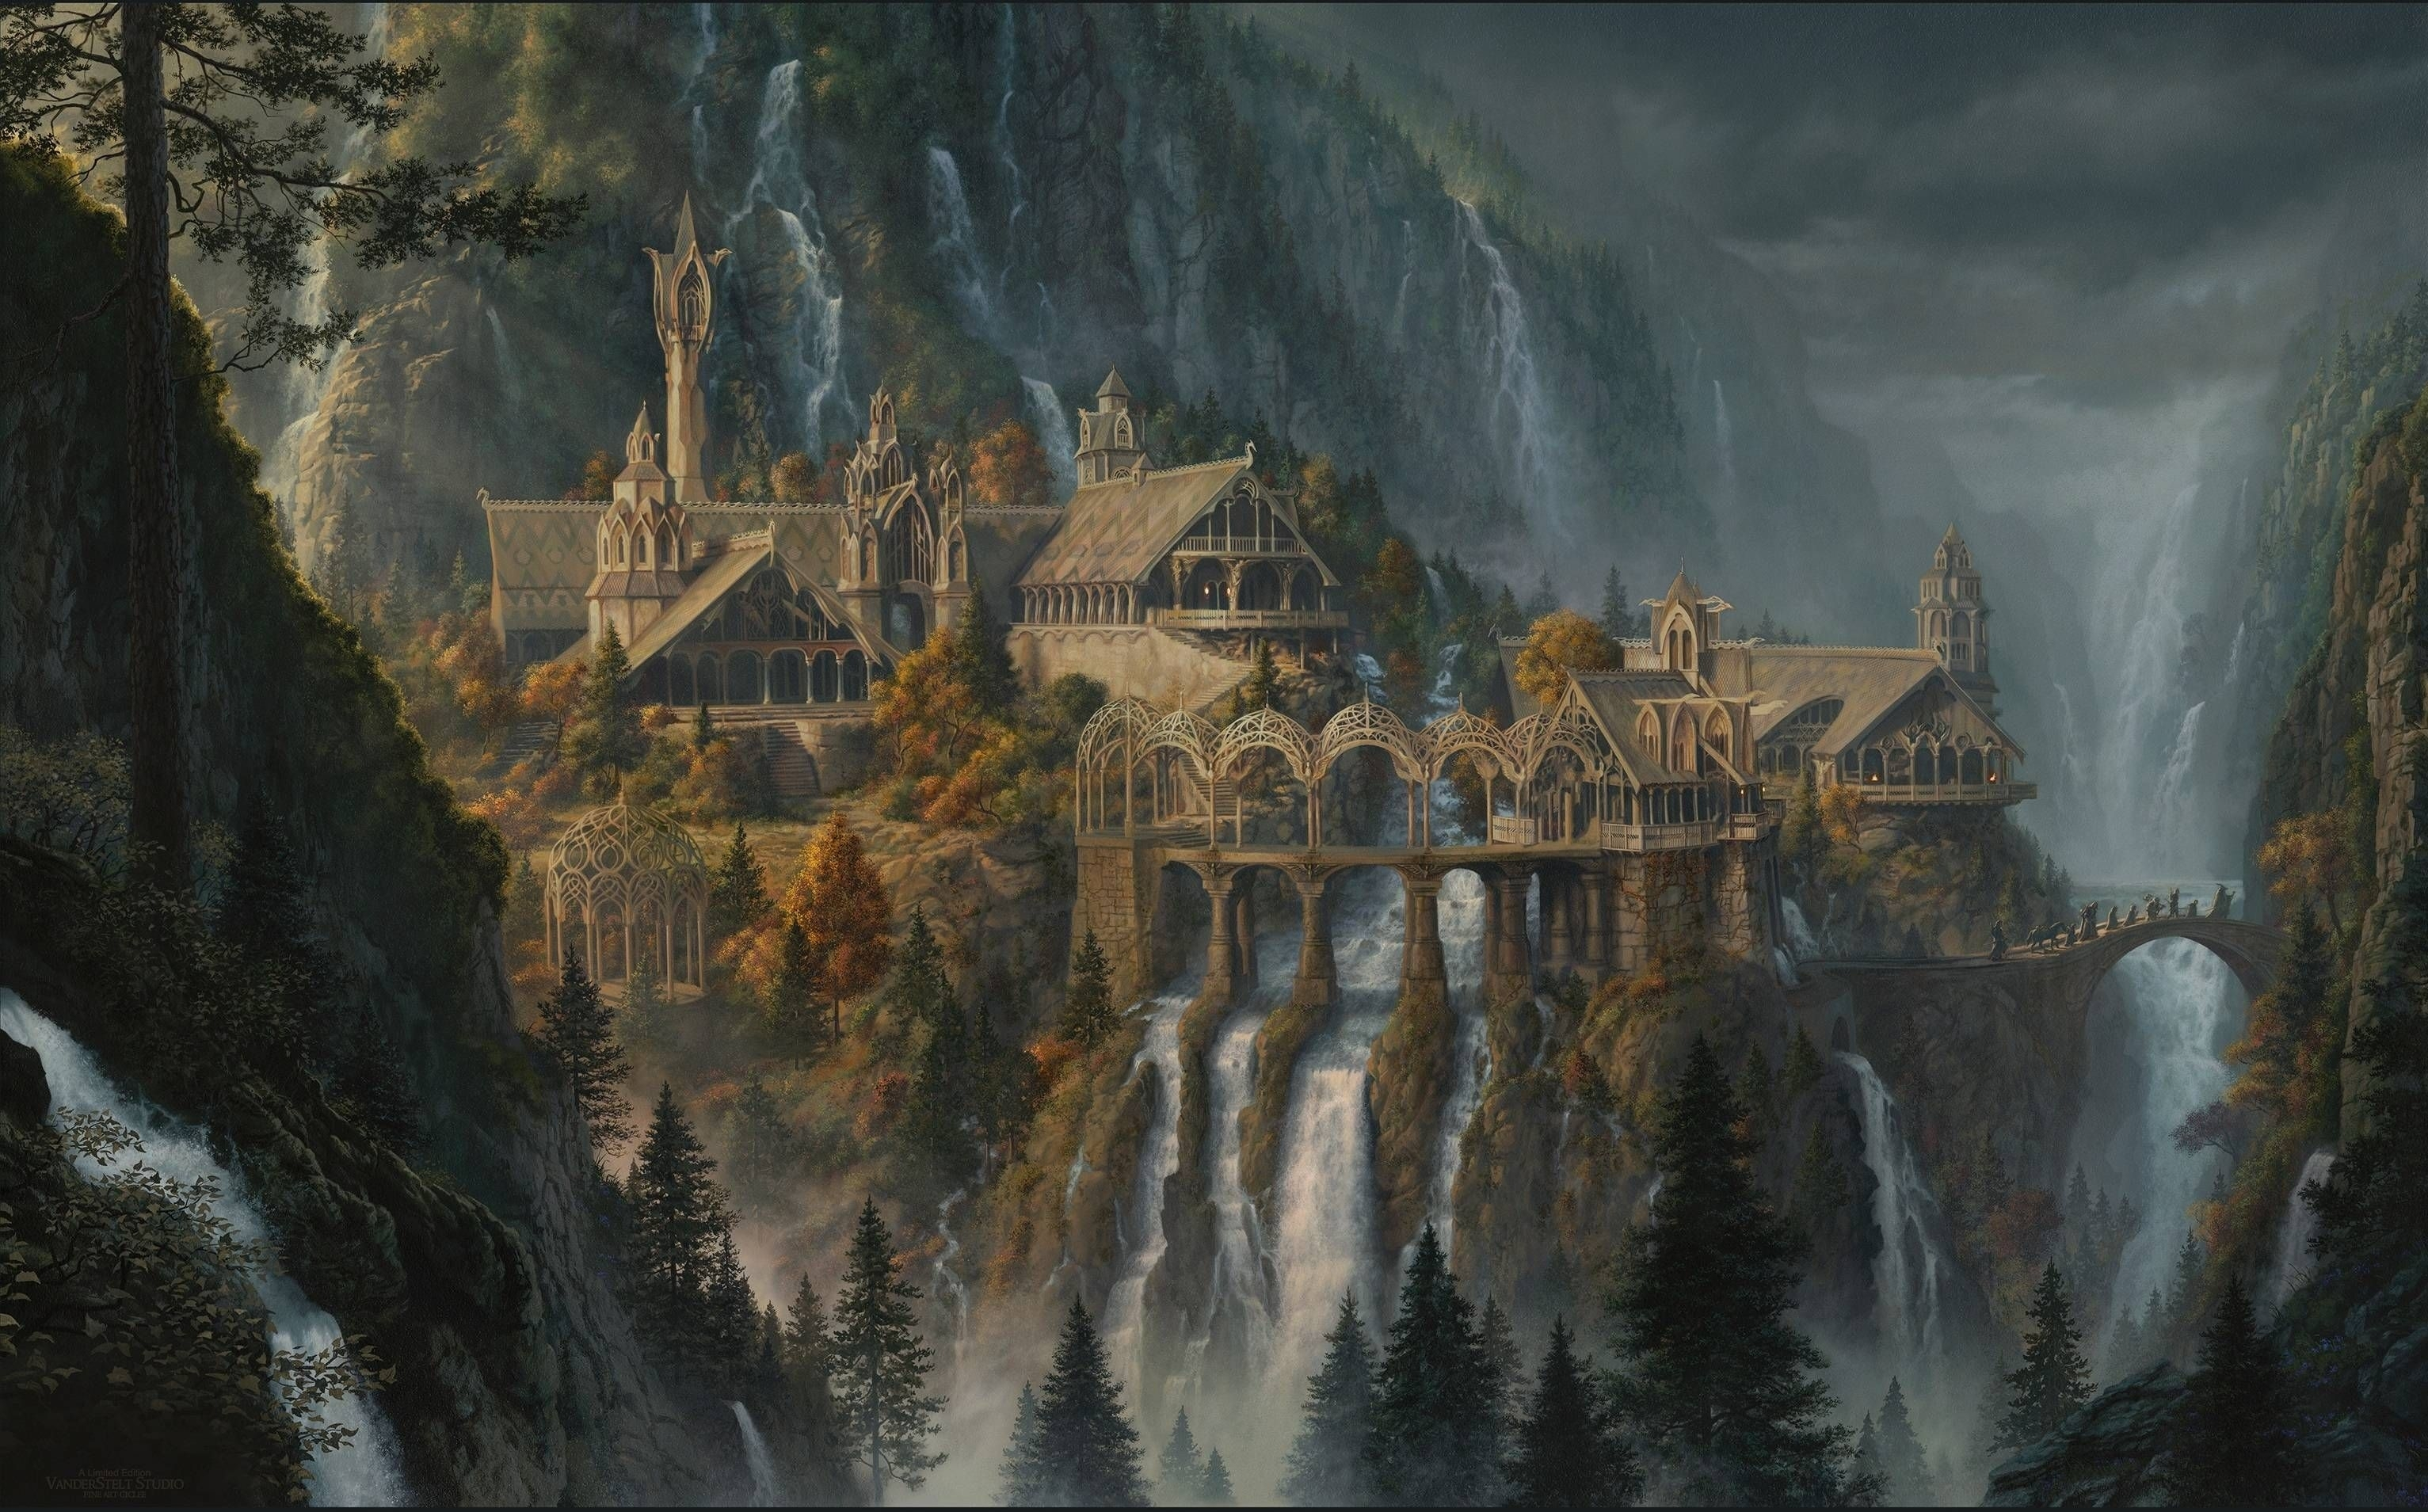 rivendell (lord of the rings) | best wallpapers on your phone